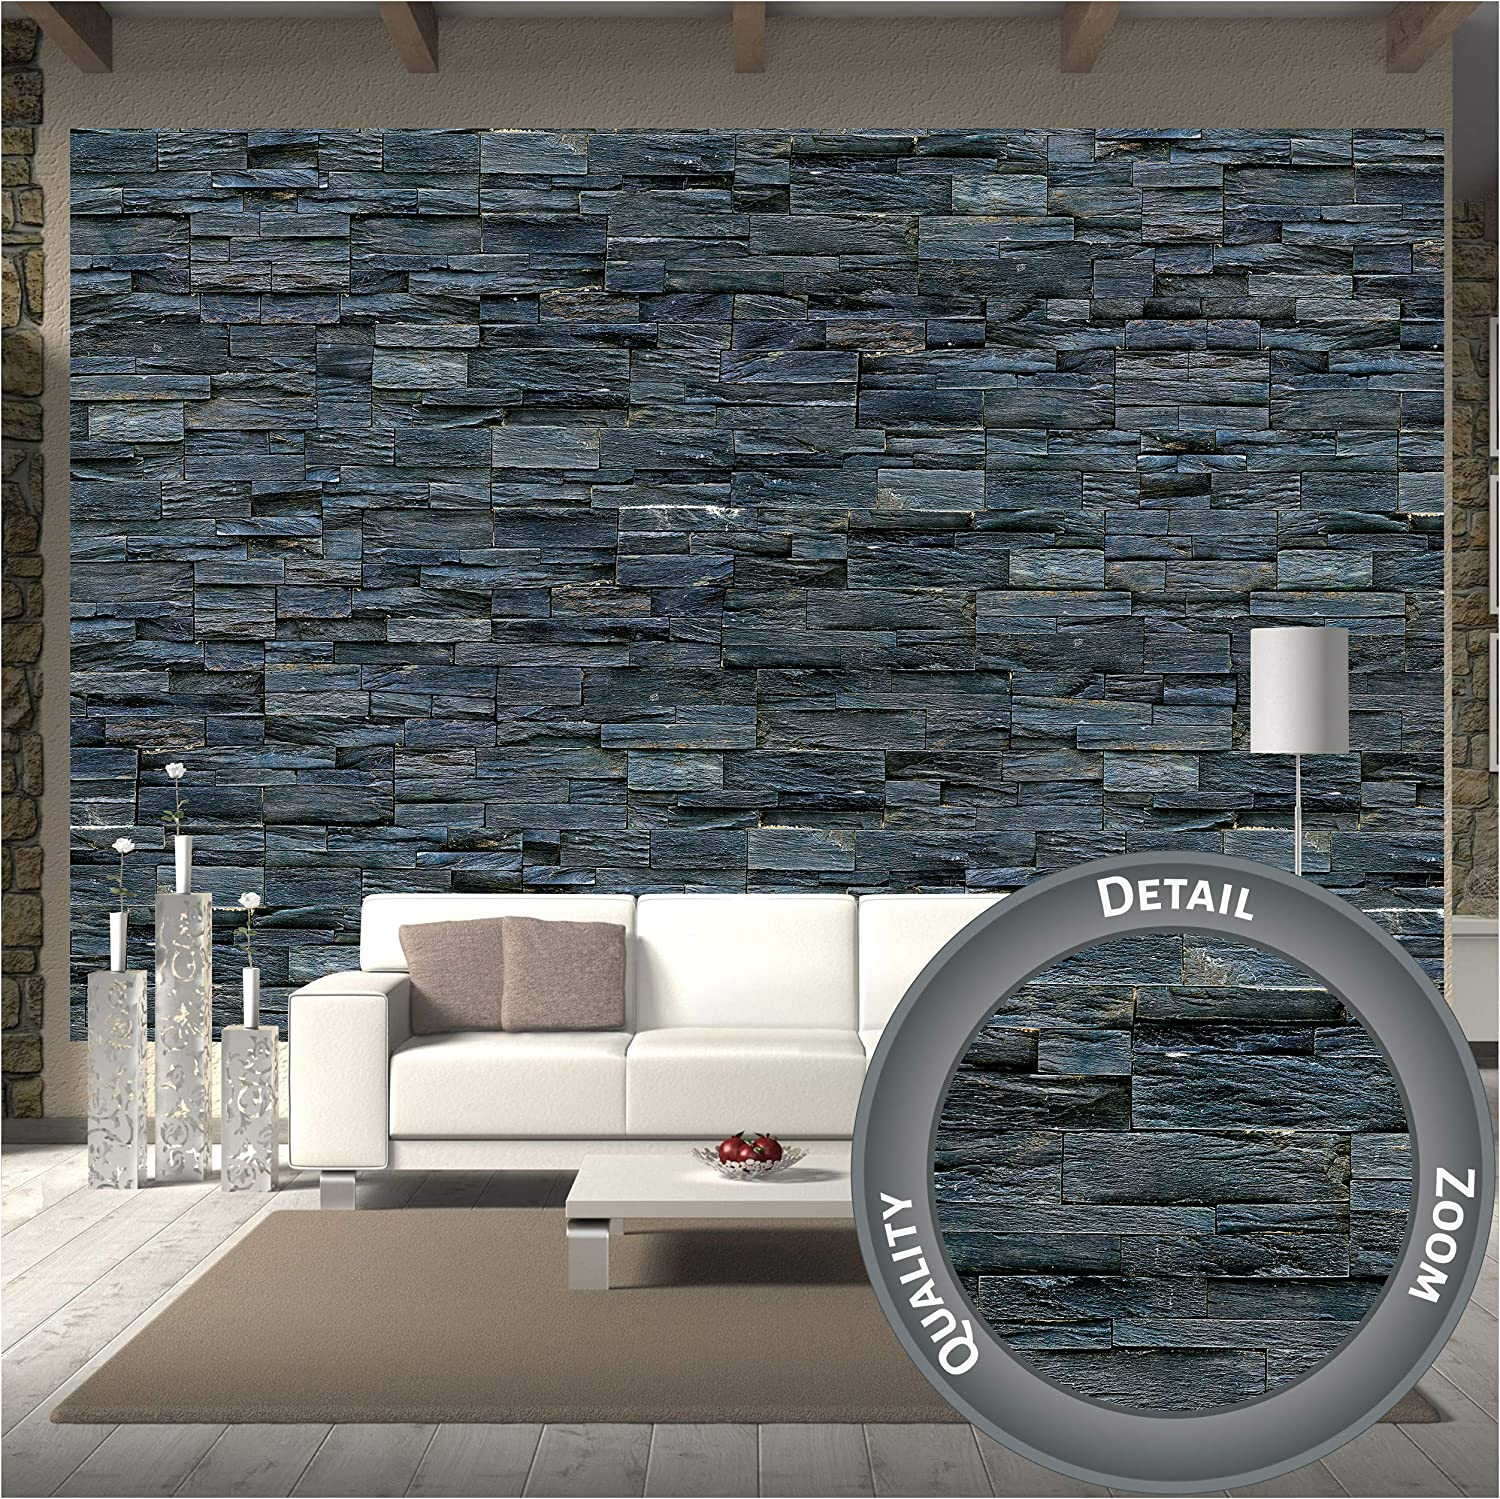 Amazon Com Great Art Large Photo Wallpaper Black Stonewall Photo Wallpaper Picture Decoration Modern Natural Dark Stone Look Industrial Design Image Decor Wall Mural 132 3x93 7in 336x238cm Home Improvement